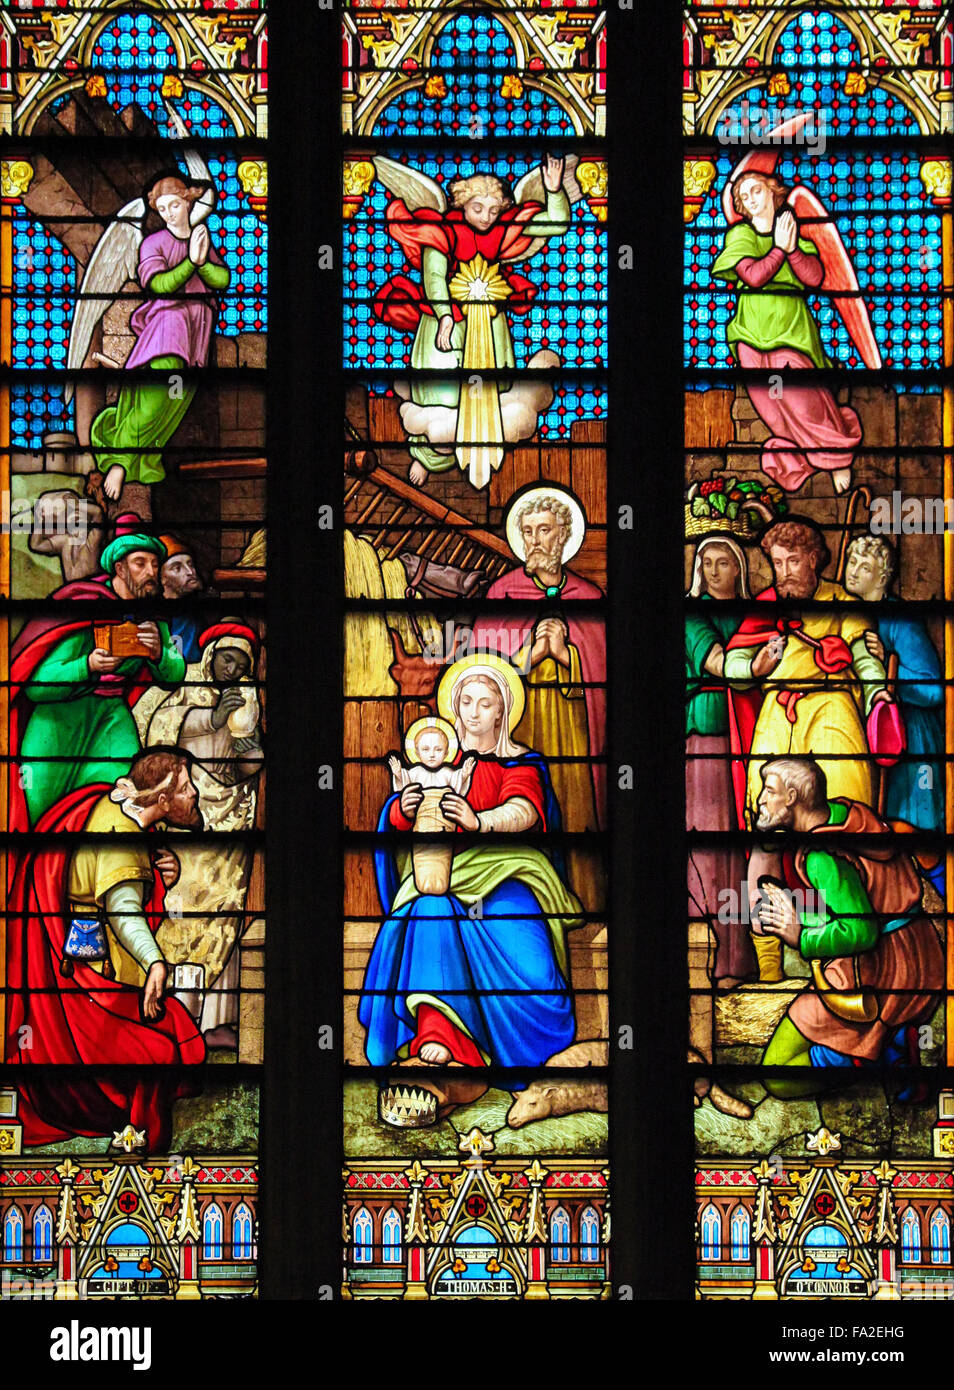 NEW YORK, US - SEPTEMBER 14, 2012: Stained Glass window depicting a Nativity Scene at Christmas in St. Patrick's - Stock Image